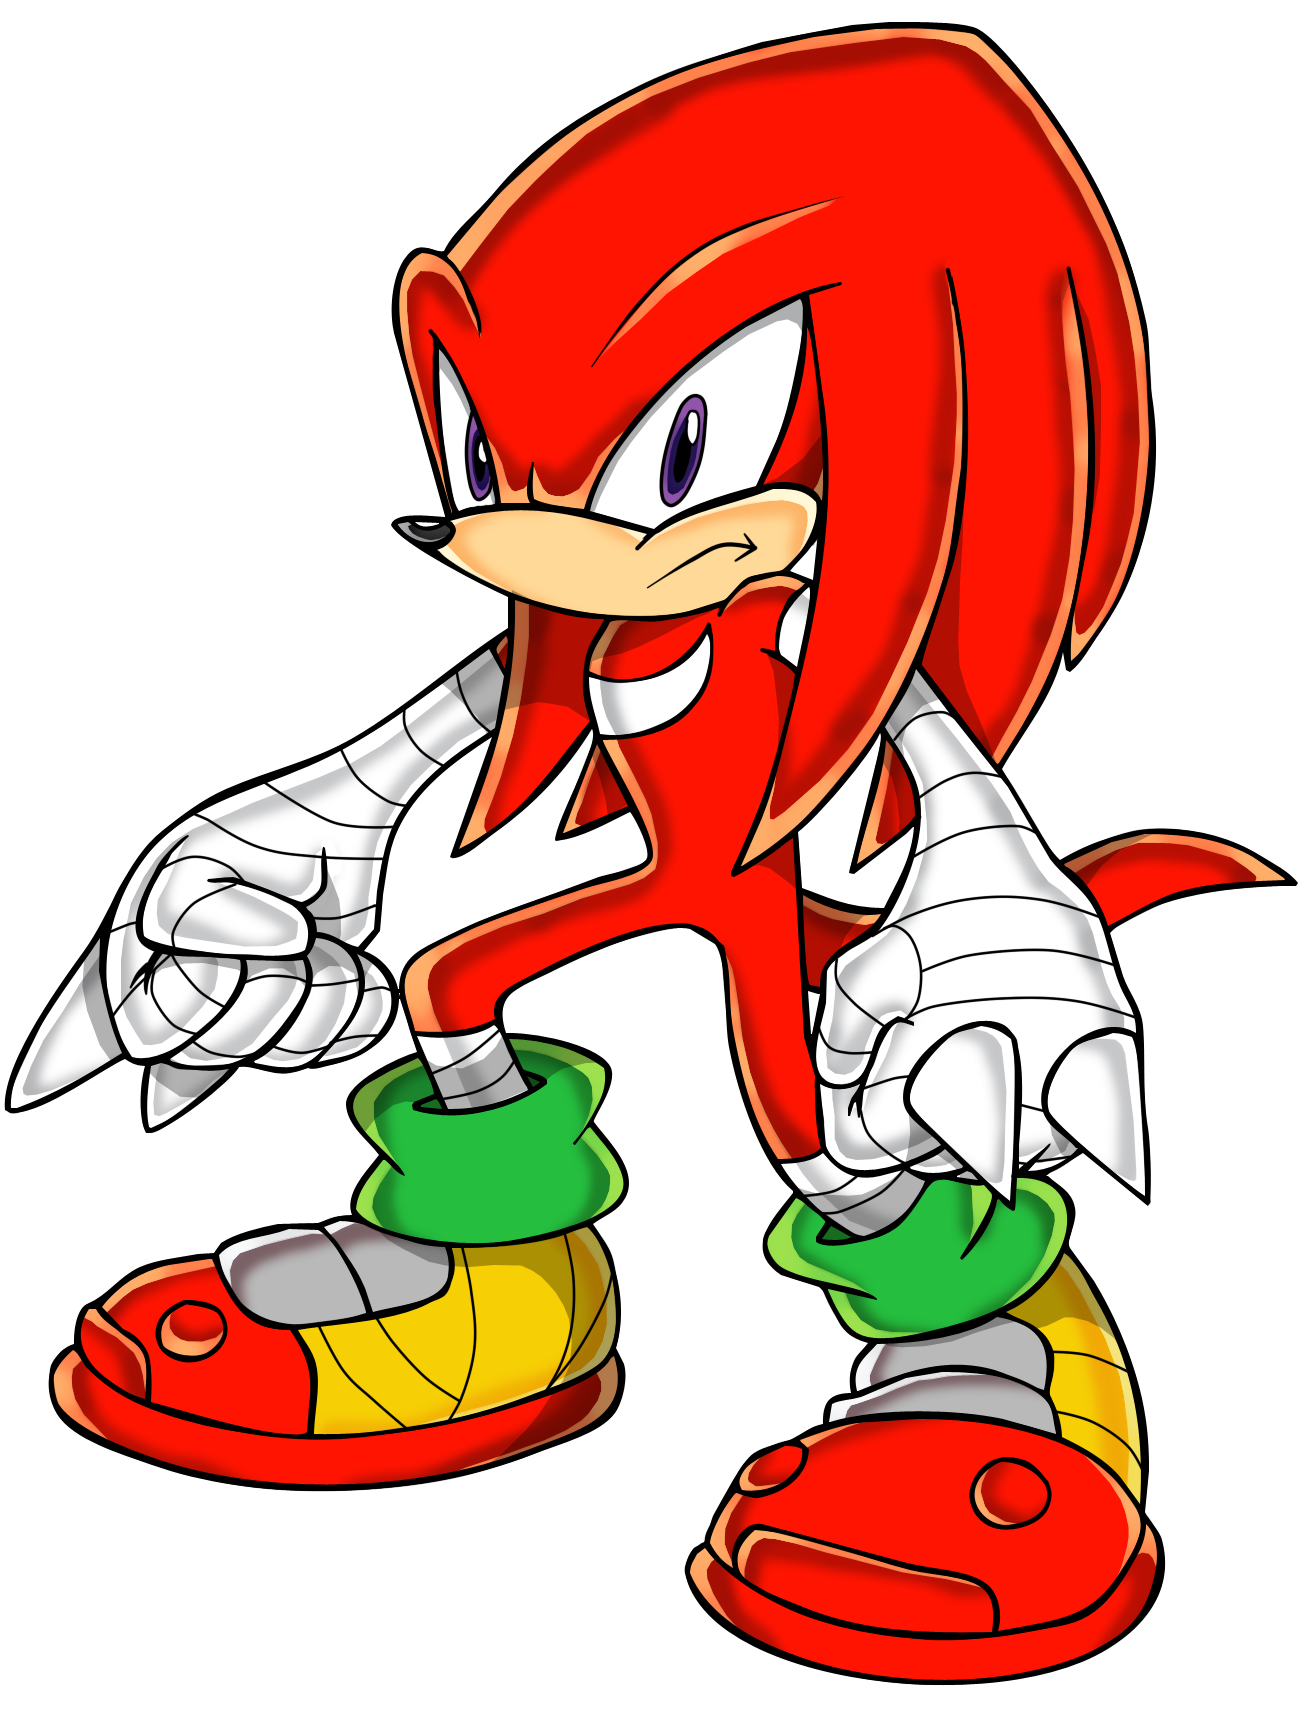 sonic-boom-knuckles-the-echidna